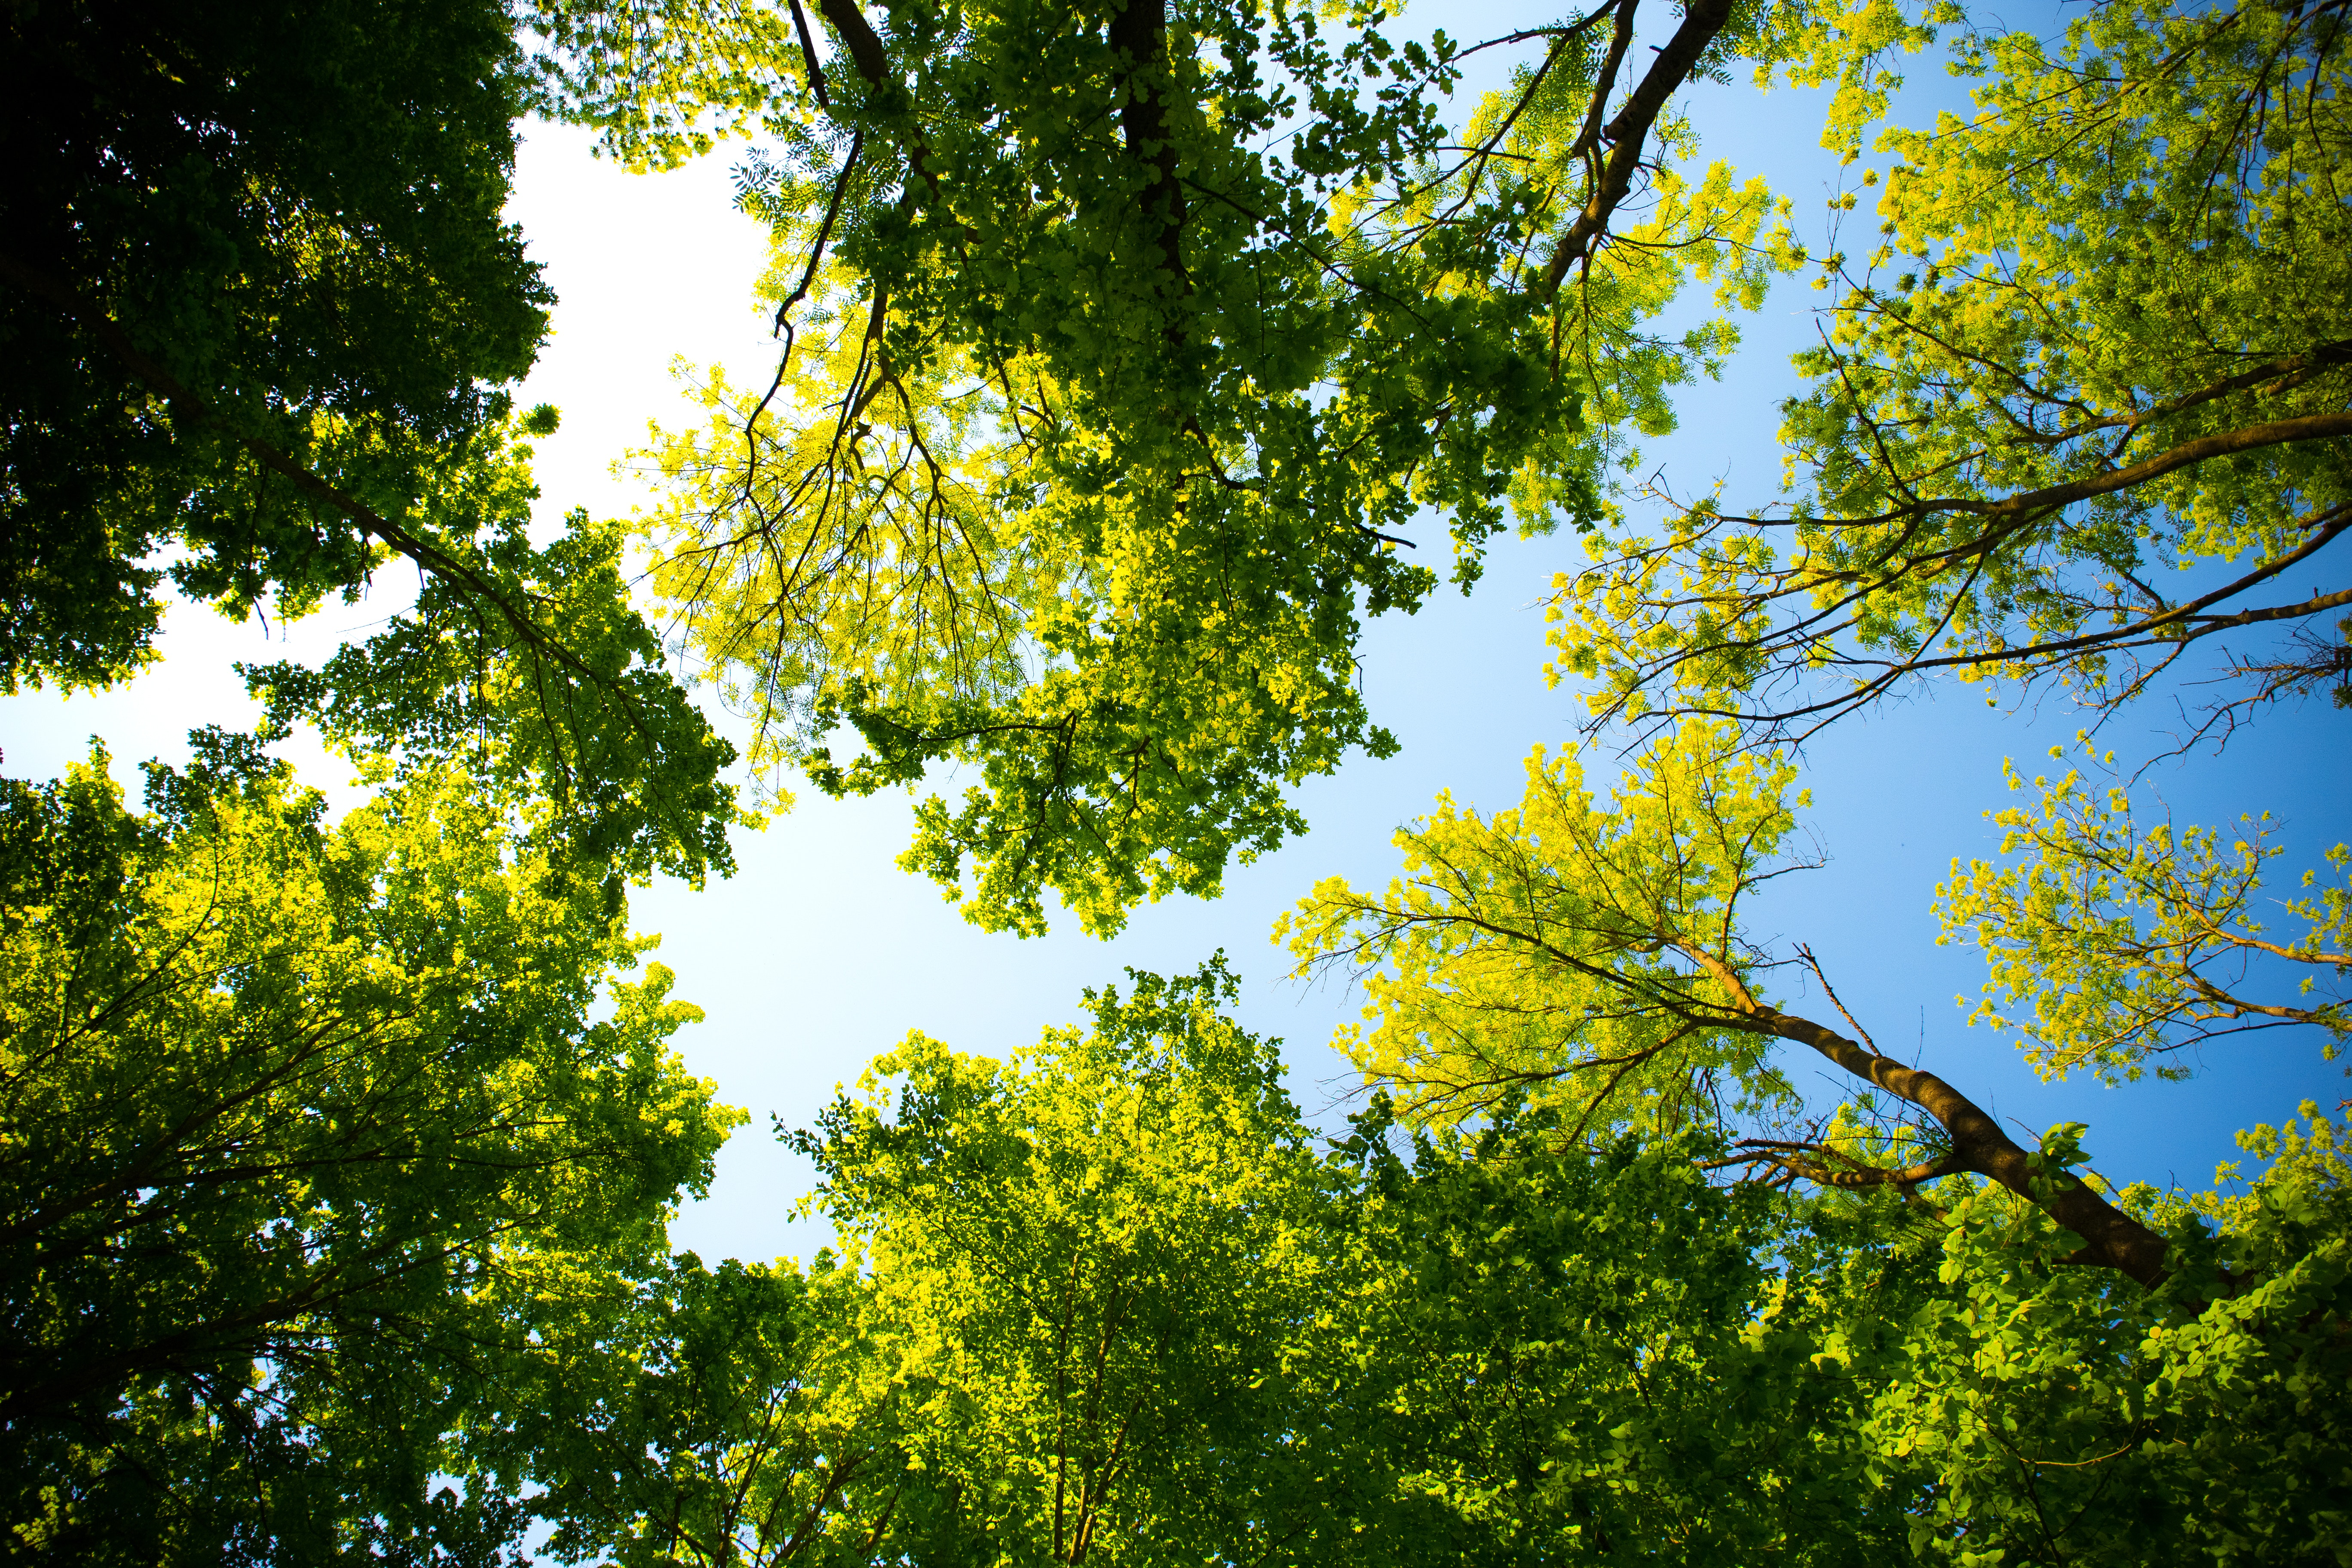 daylight-forest-nature-589802